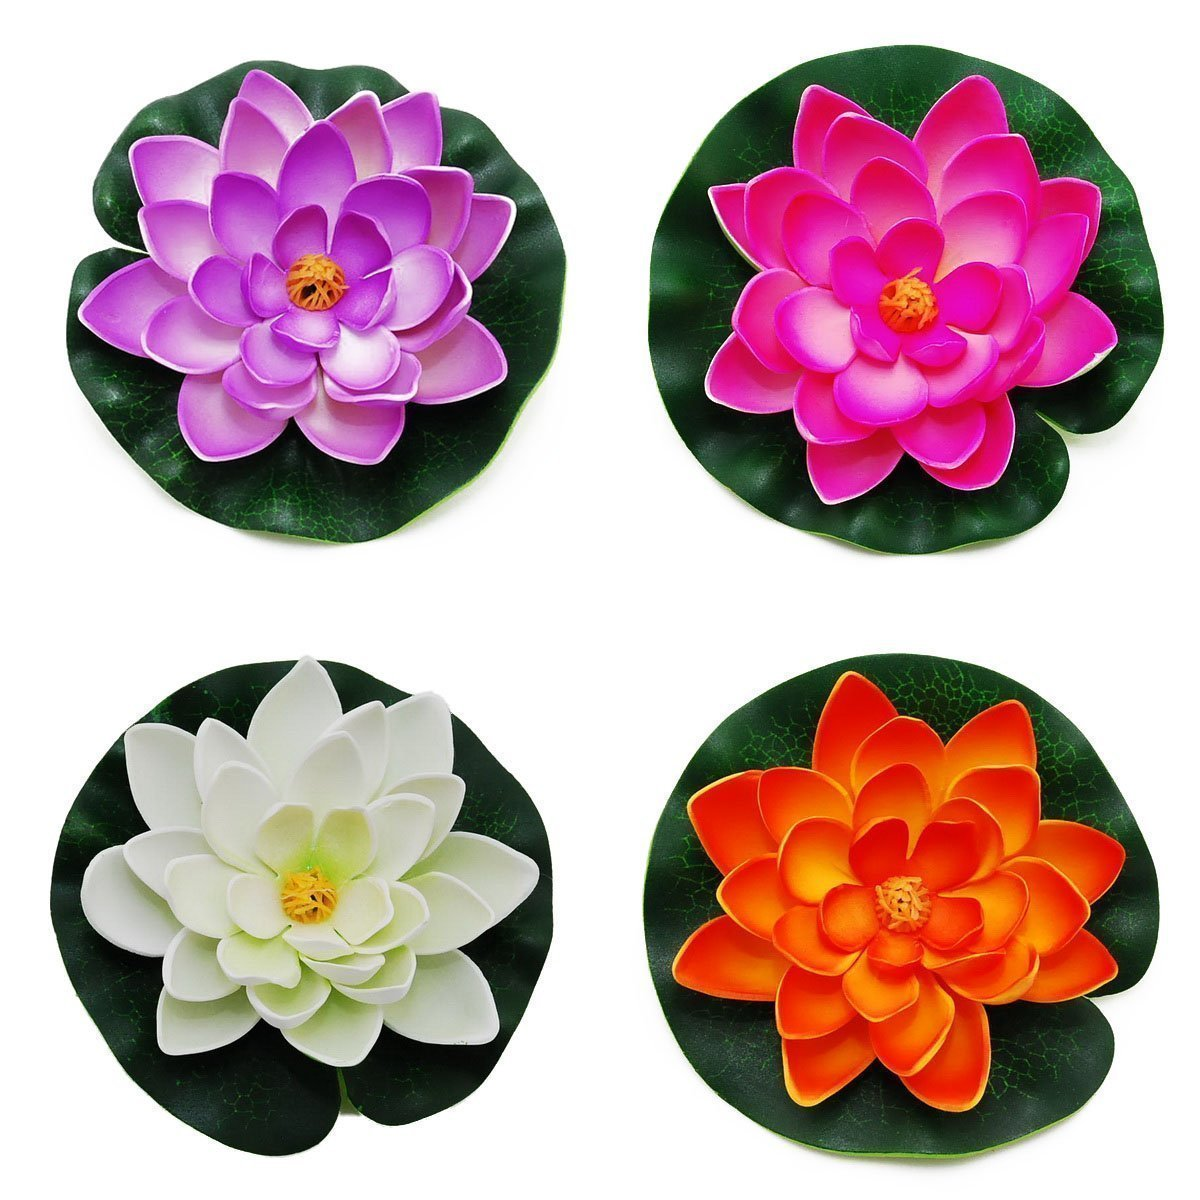 Goege Artificial Floating Foam Lotus Flower Pond Decor Water Lily with Stylus Set of 4 (Large(3.5'' * 11''inch))